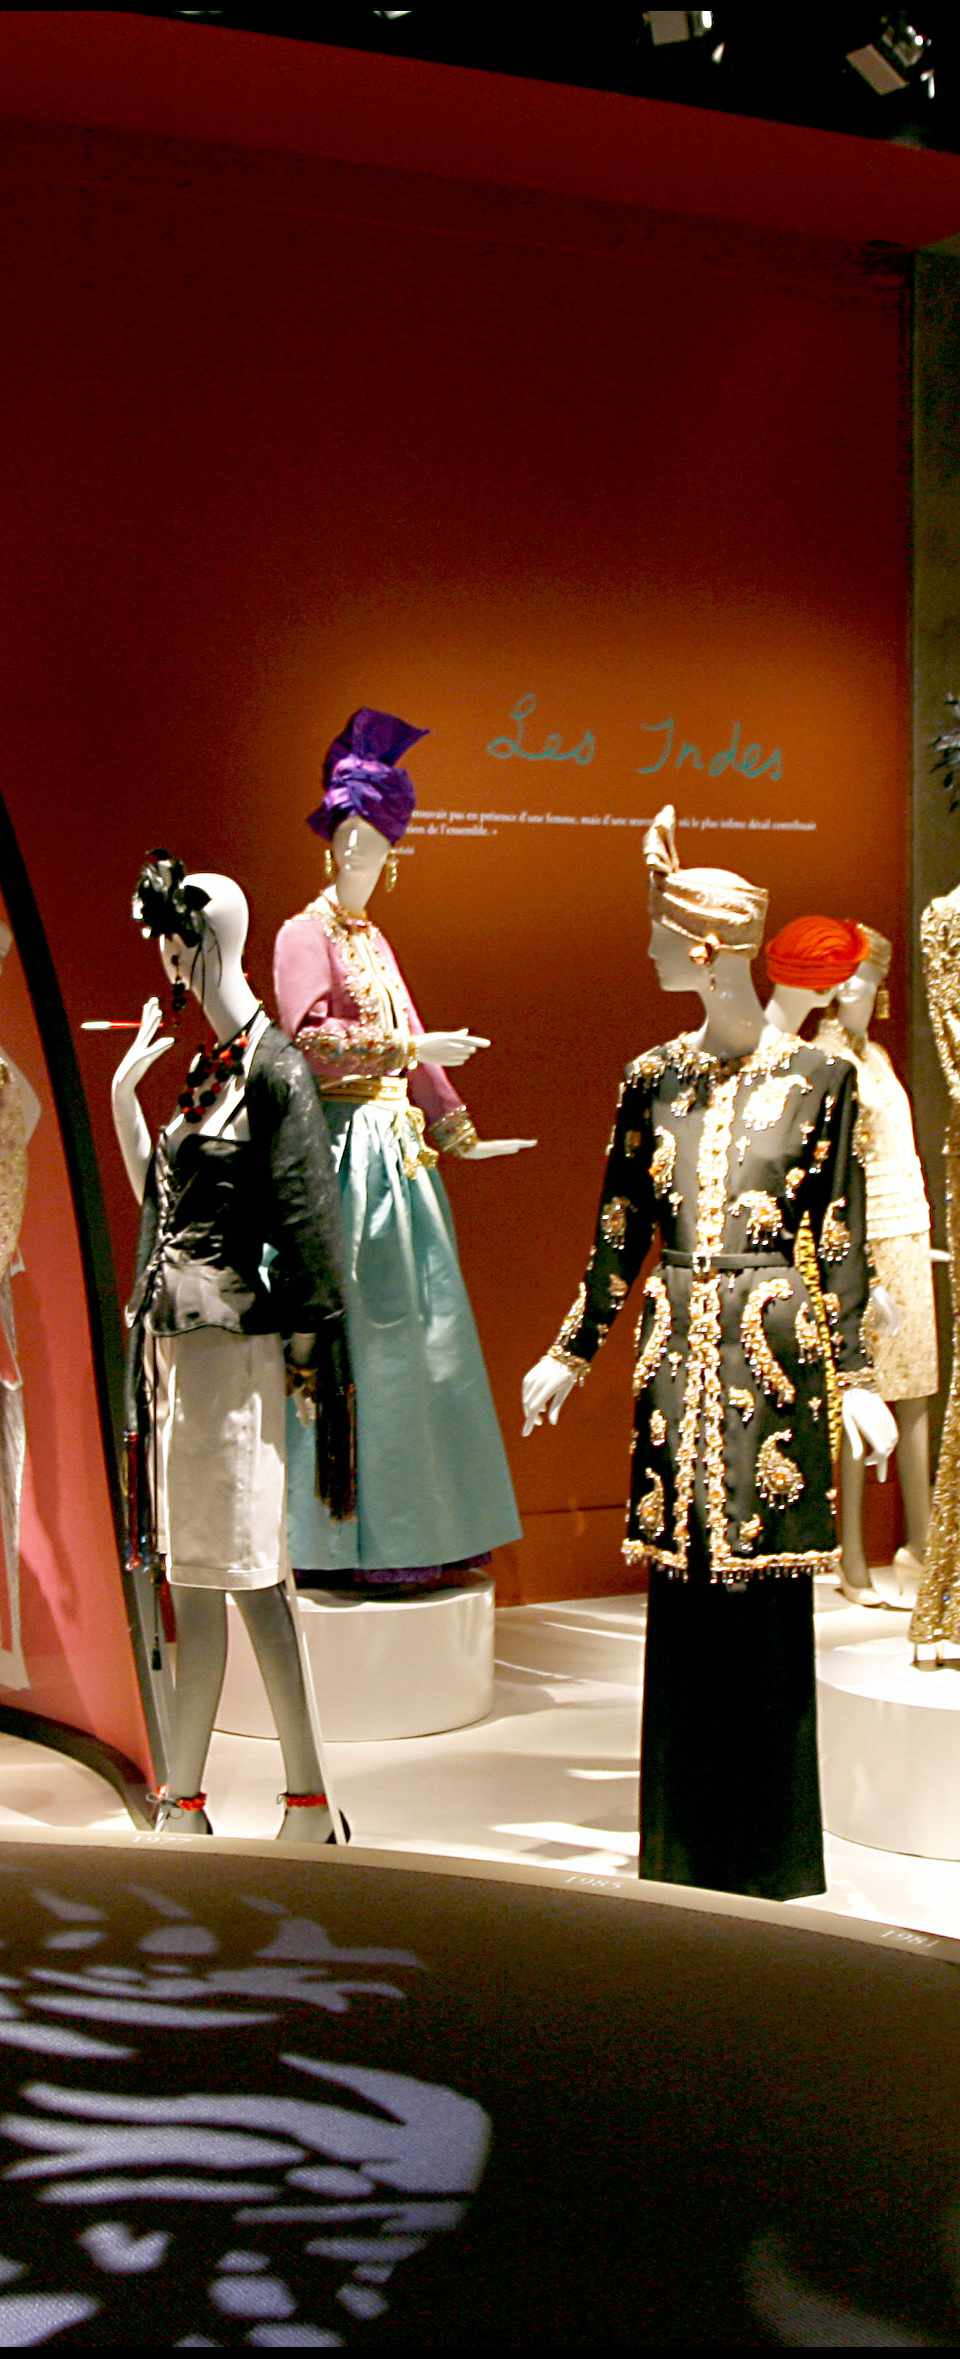 The inaugural exhibition at the Yves Saint Laurent Museum in Paris focused on the French fashion designer's culturally specific creations. Here, Spain is highlighted.